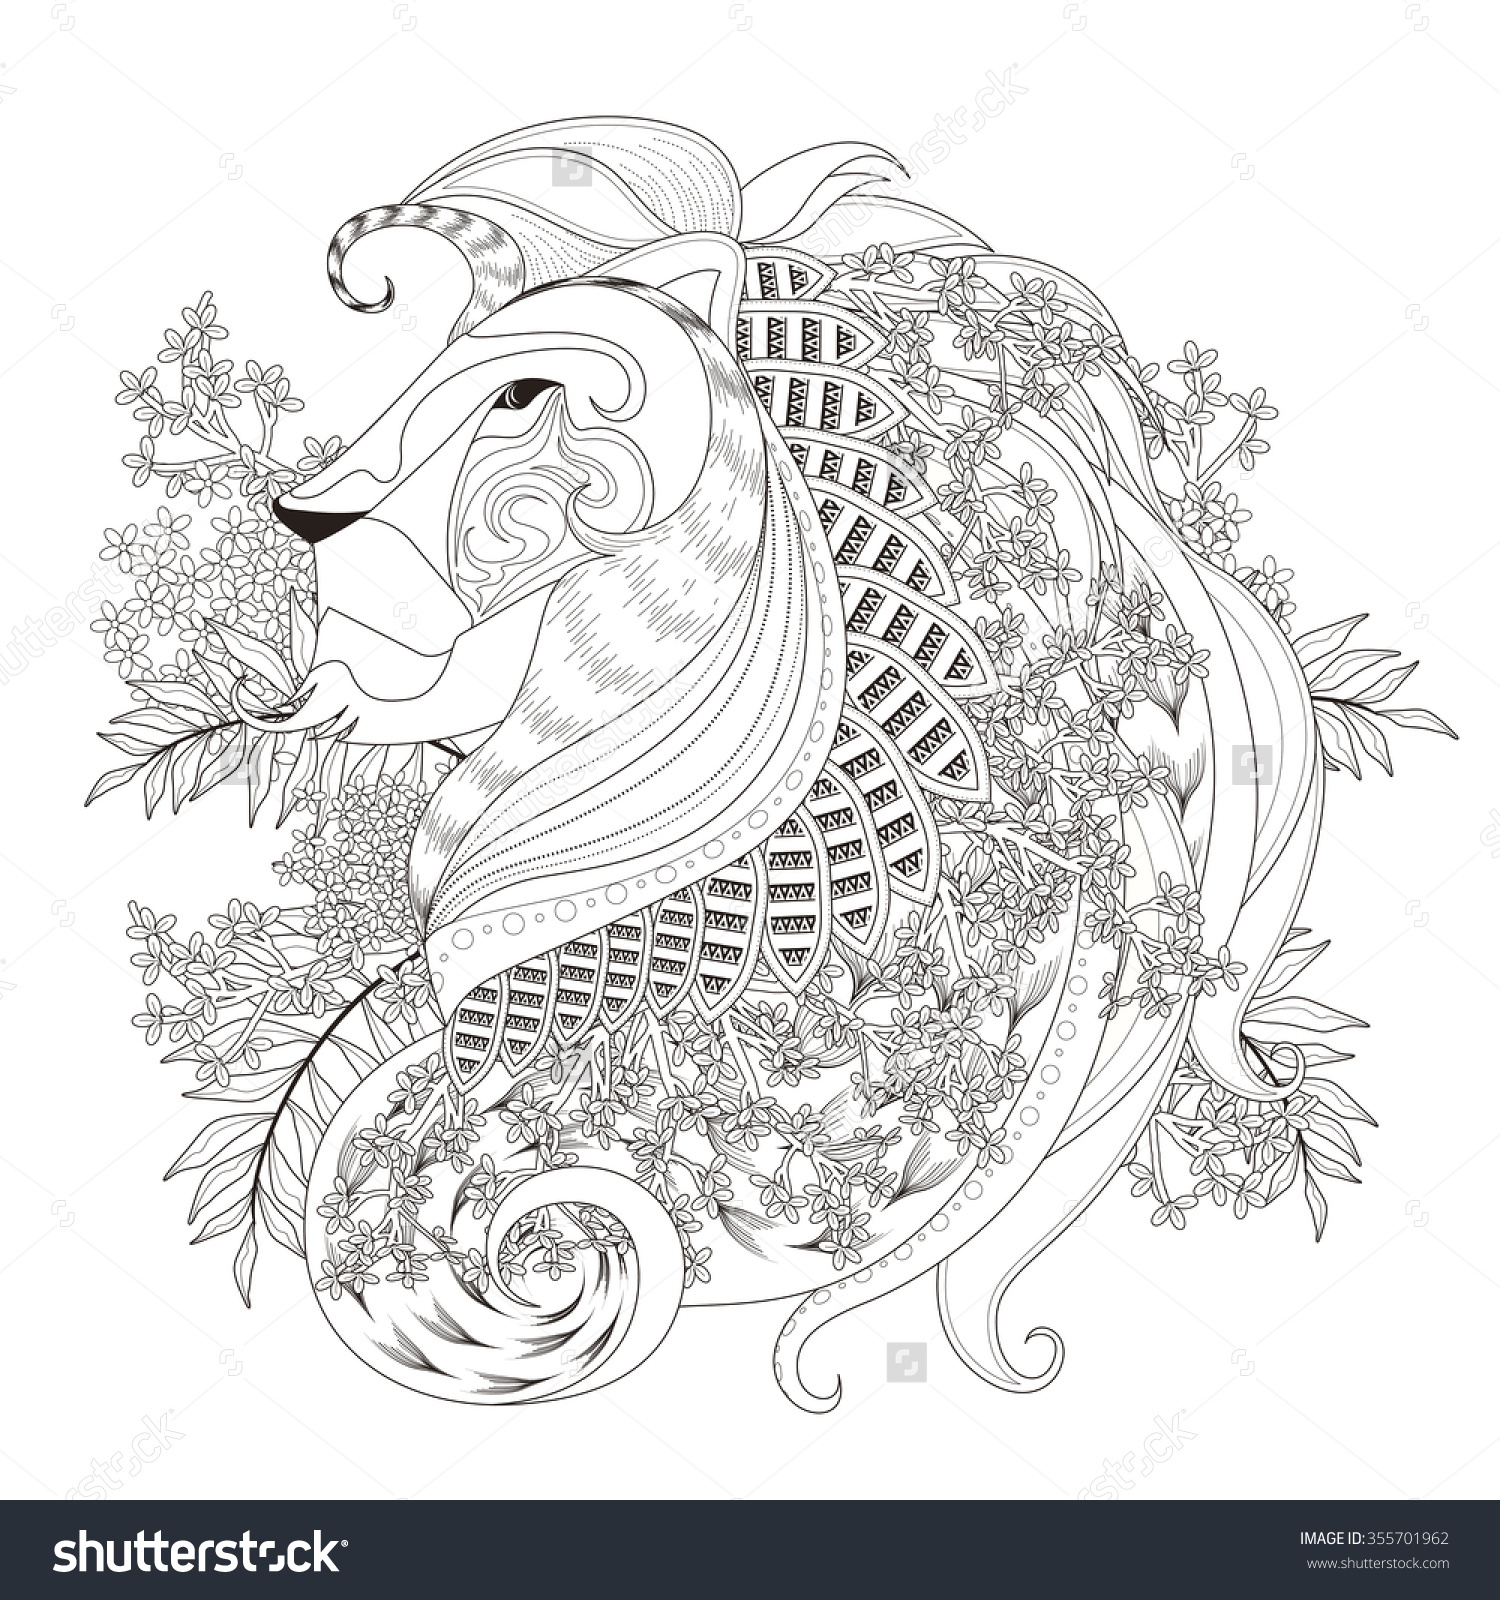 Lion colorings - Attractive Lion Coloring Page With Floral Elements In Exquisite Line